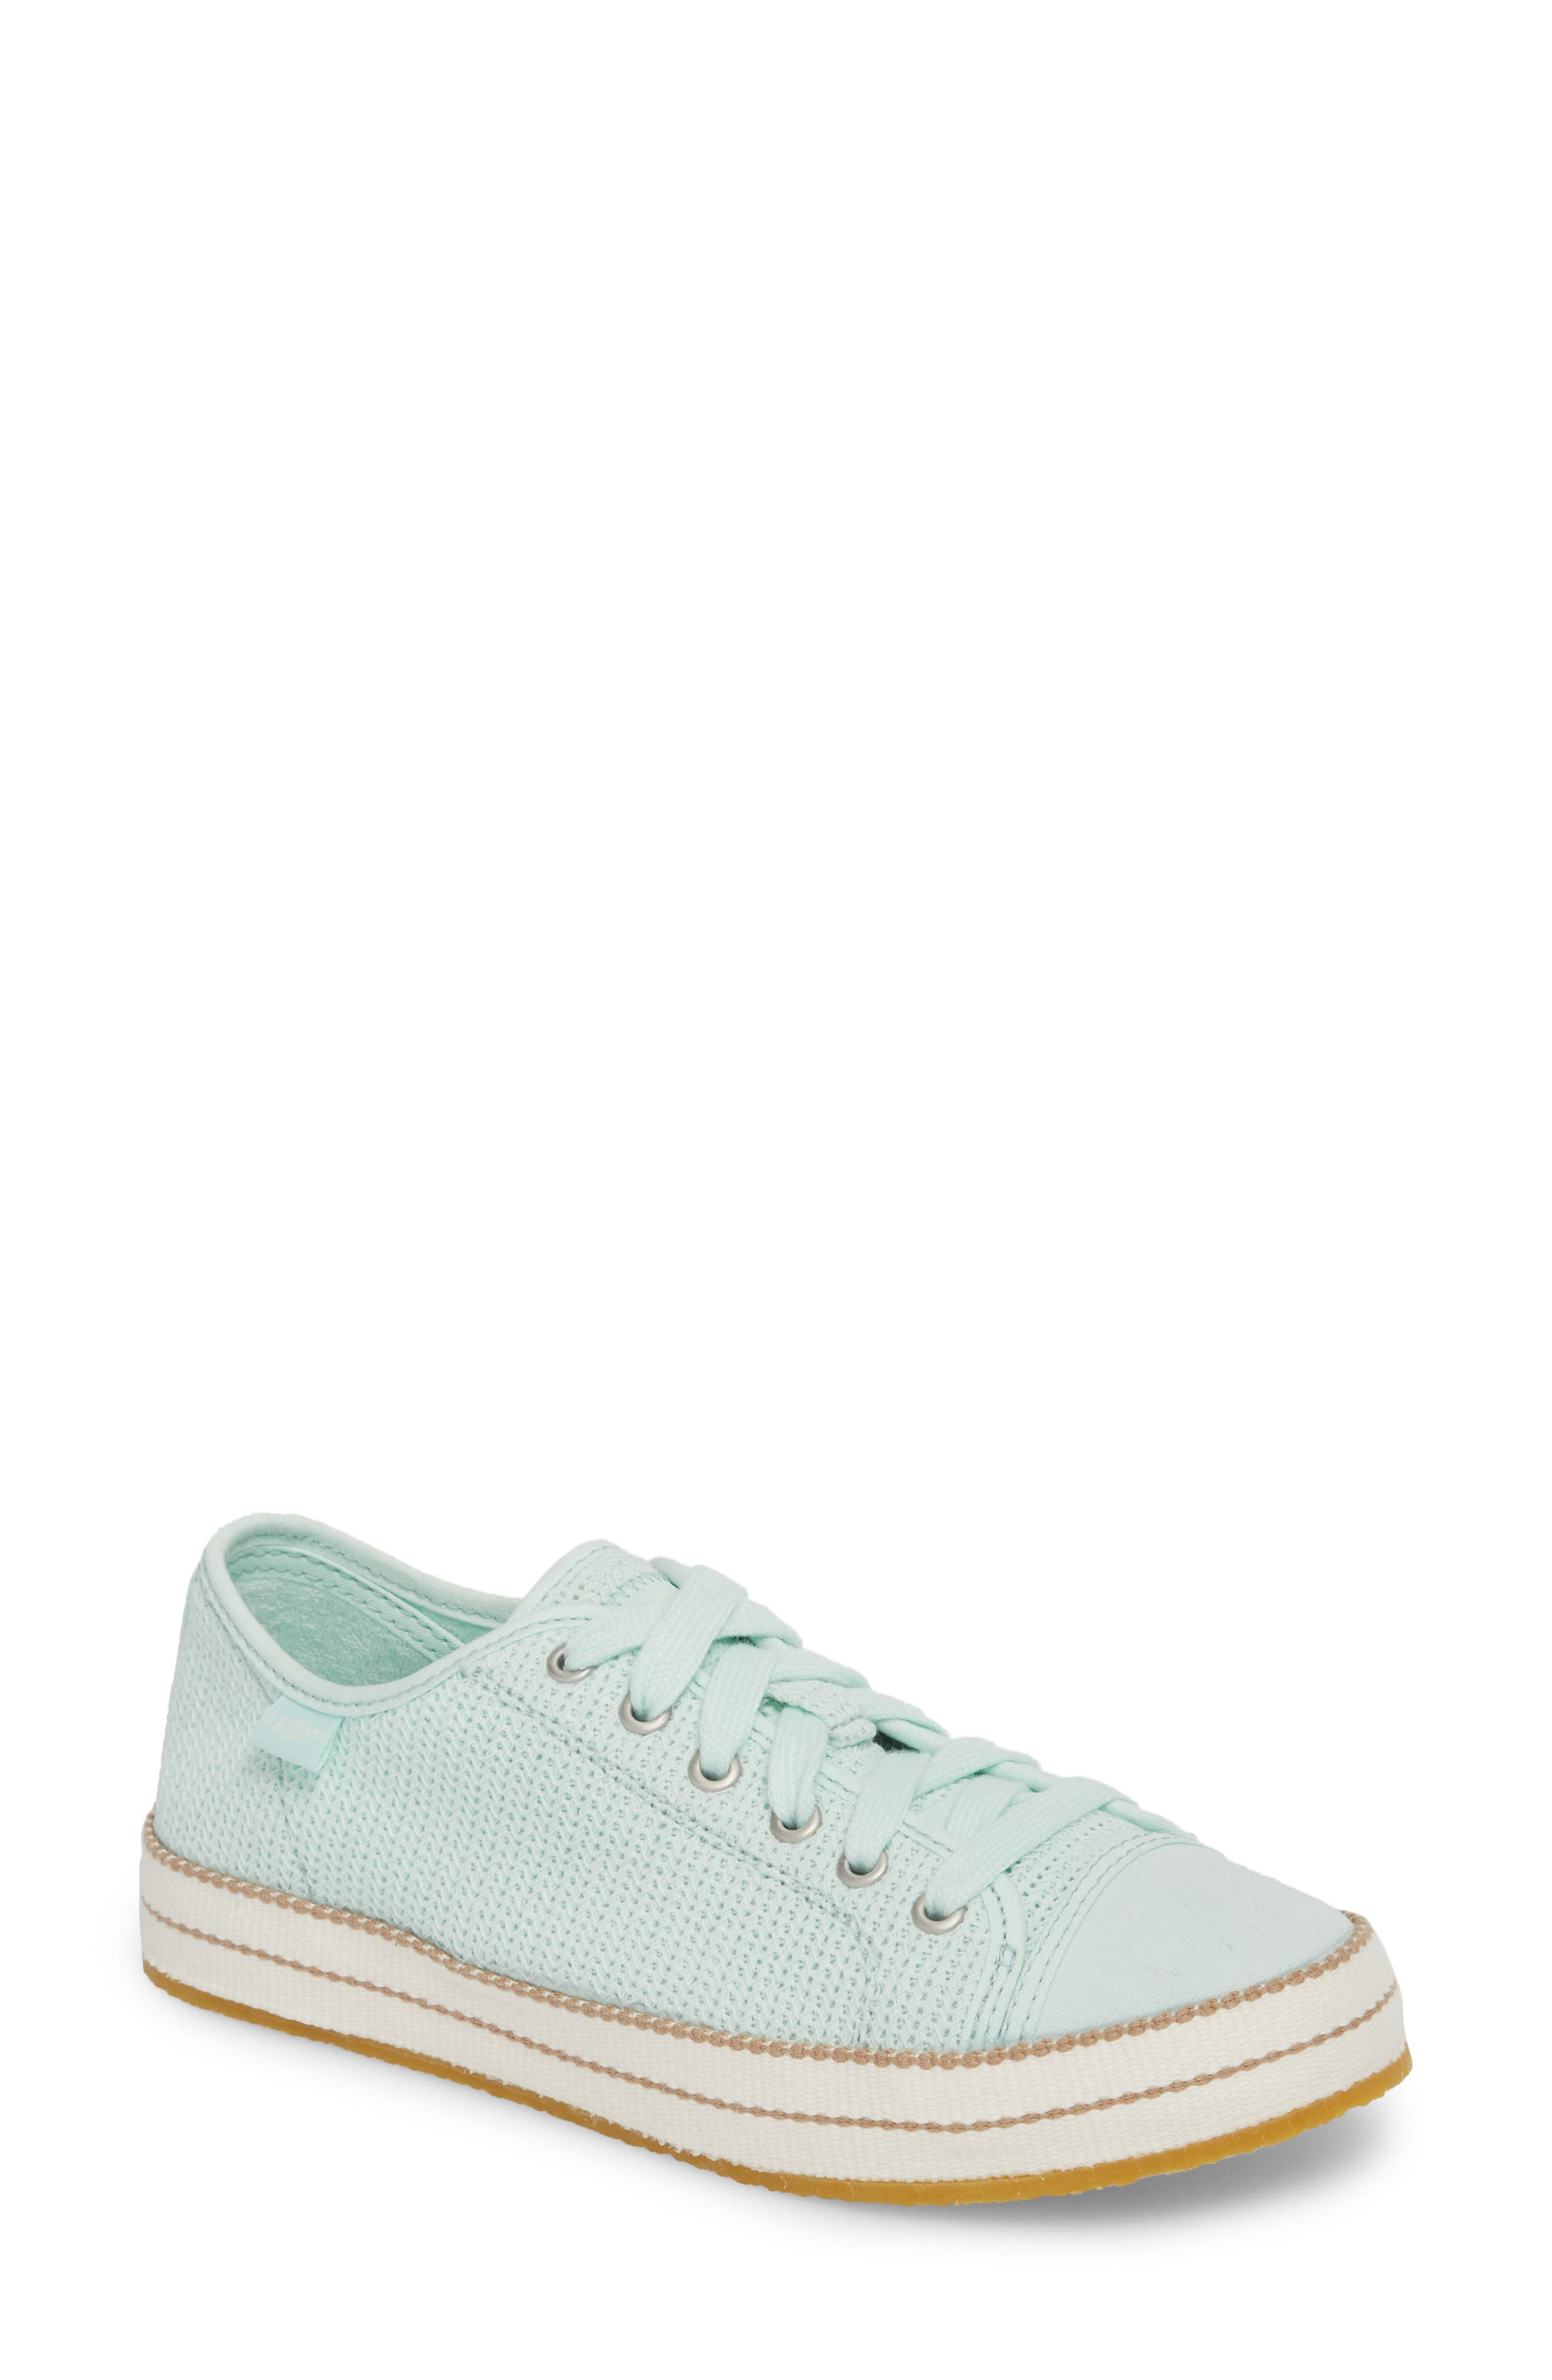 Claudi Sneaker,                         Main,                         color, Aqua